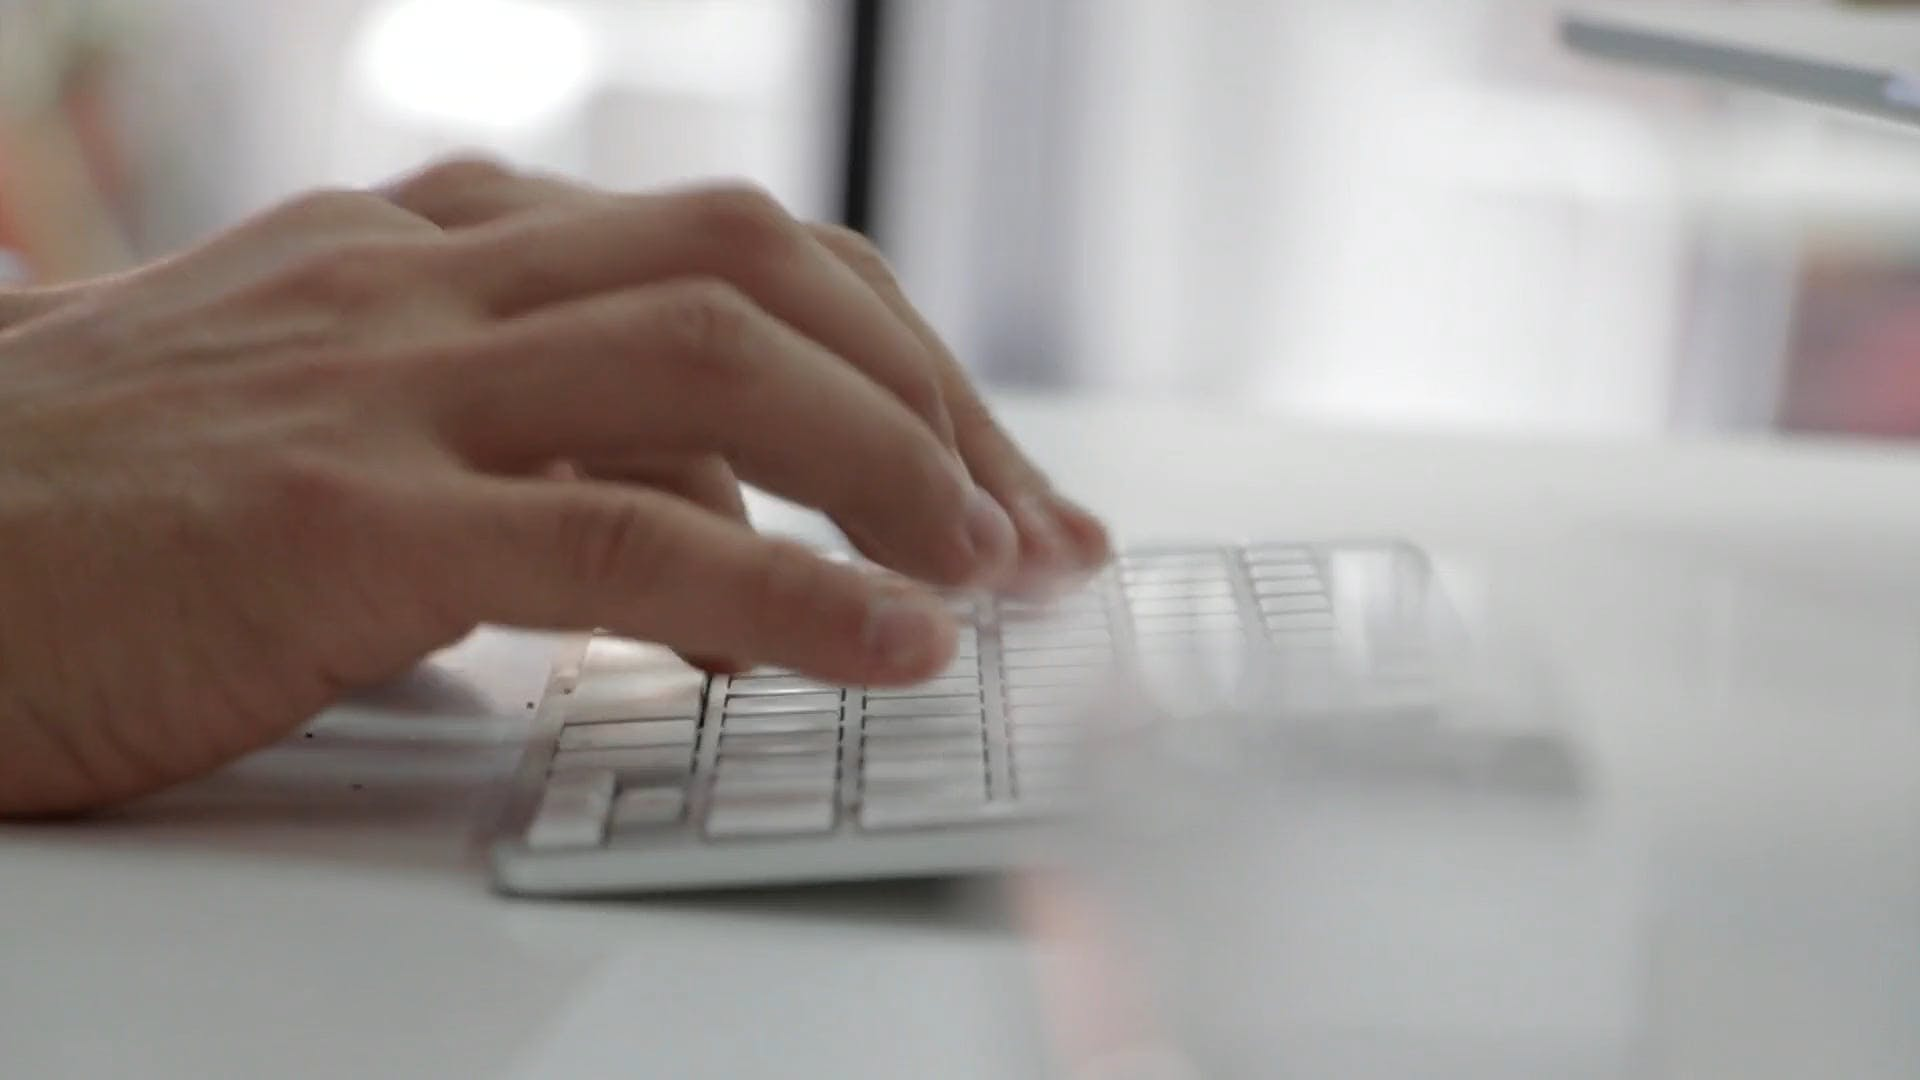 Close Up Video Of Man Typing On A White Keyboard